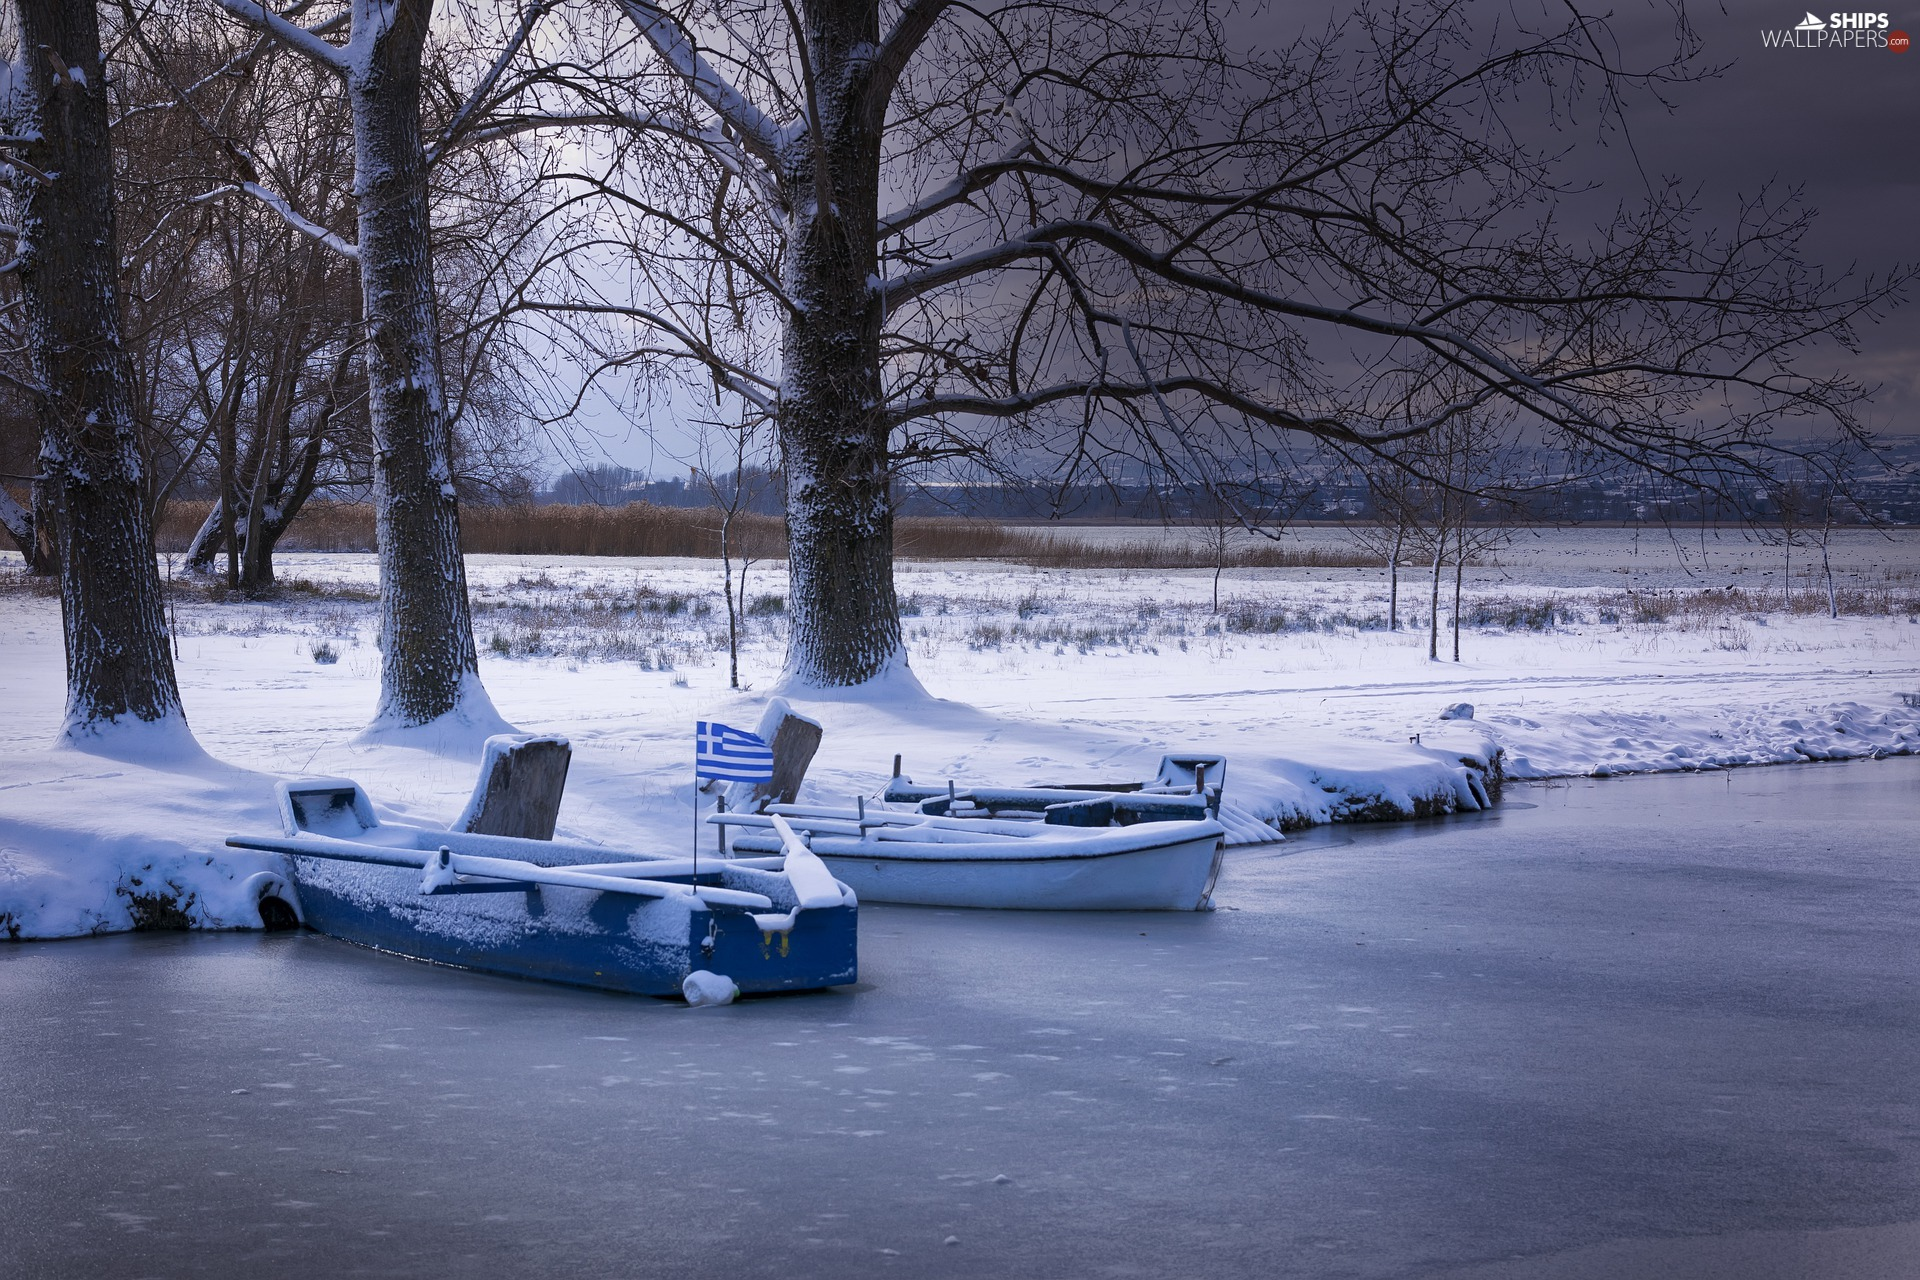 boats, winter, viewes, snow, trees, lake